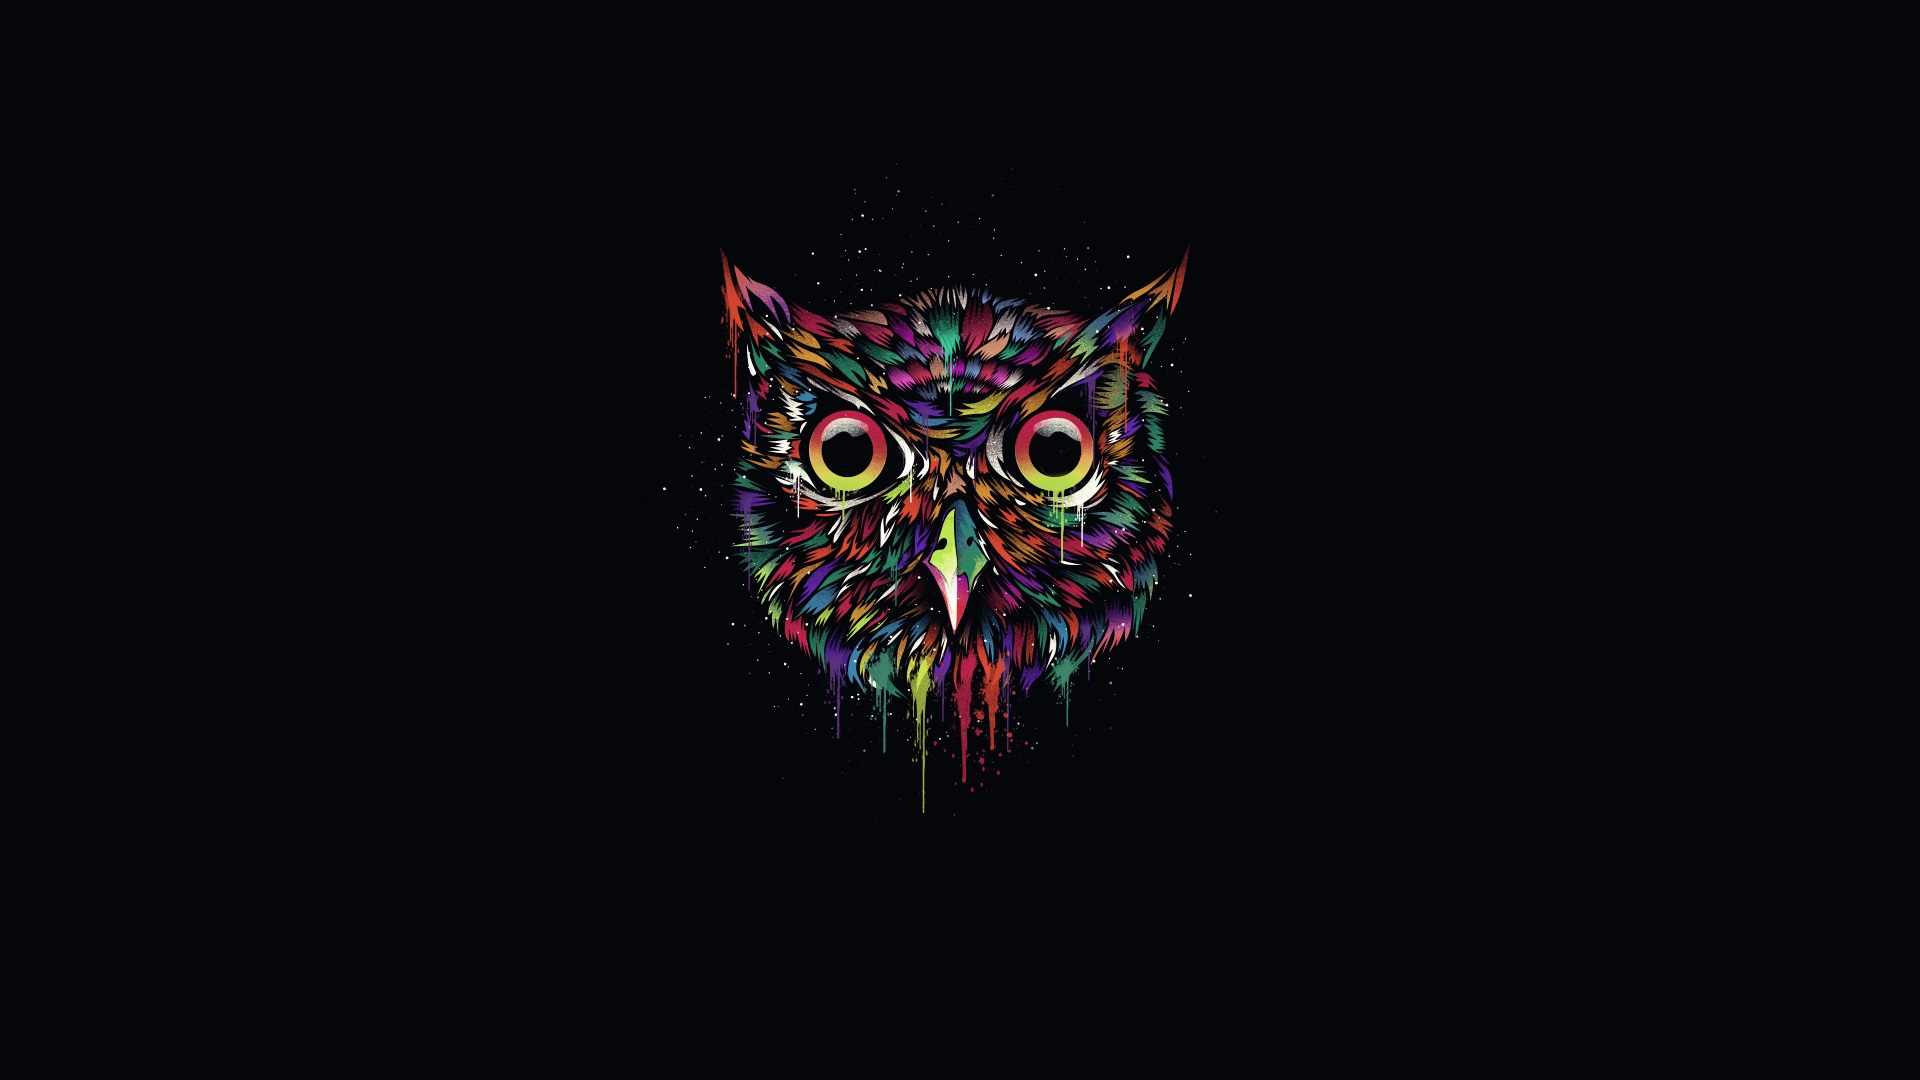 Beautiful Anime Girl Fantasy Forest Wallpaper Colorful Owl Creative Design Black Background Wallpaper